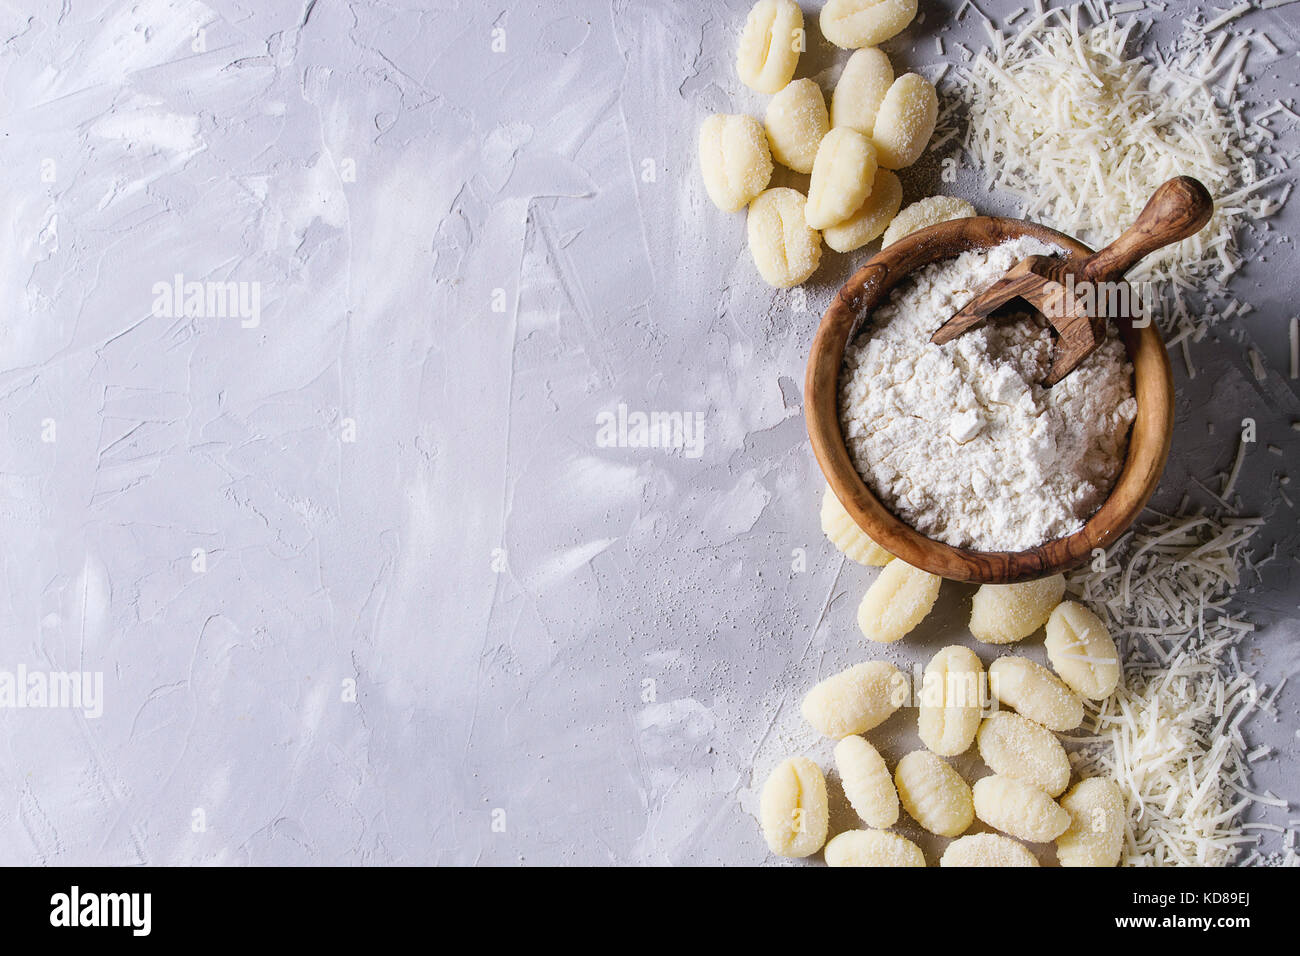 Raw uncooked potato gnocchi with olive wood bowl of flour, grated parmesan cheese over gray concrete background. - Stock Image